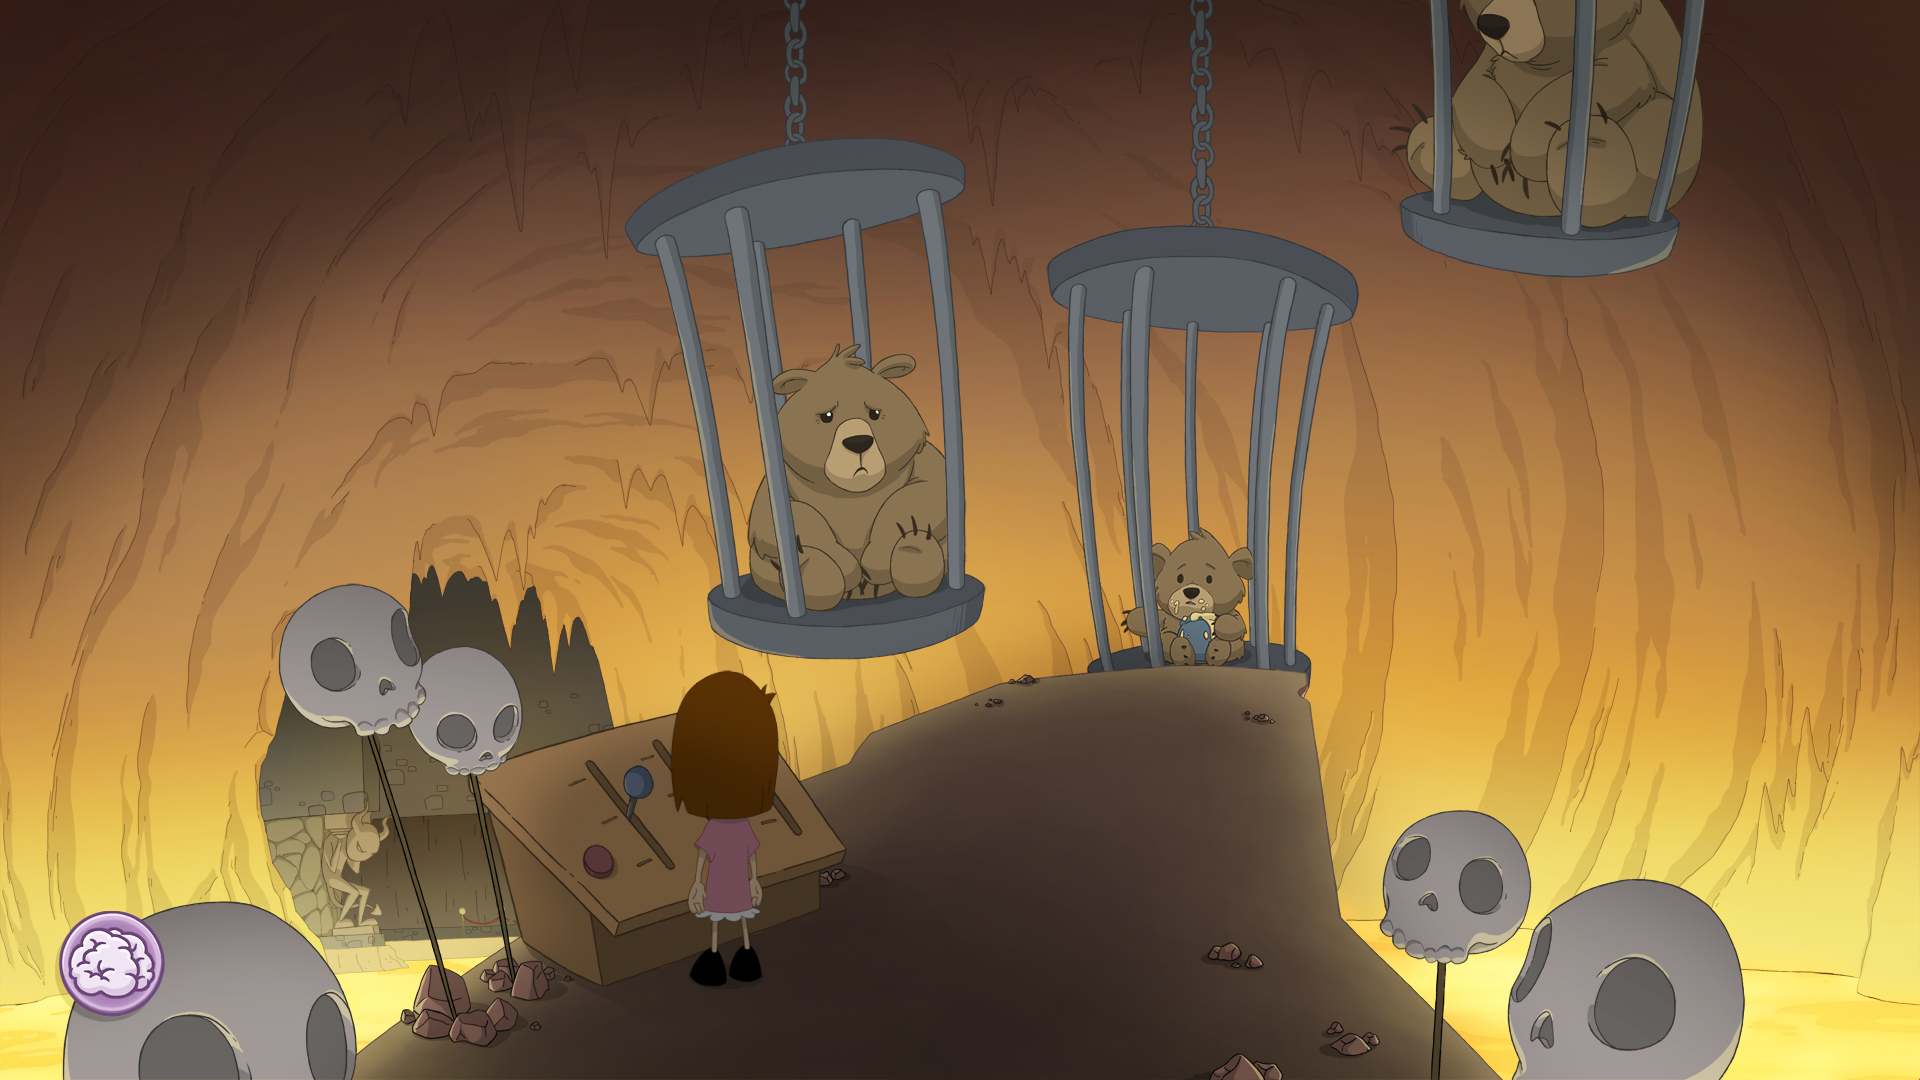 Anna's Quest:  ANna stand at a conrol table with levers surrounded by skulss, three bears trapped in cages.